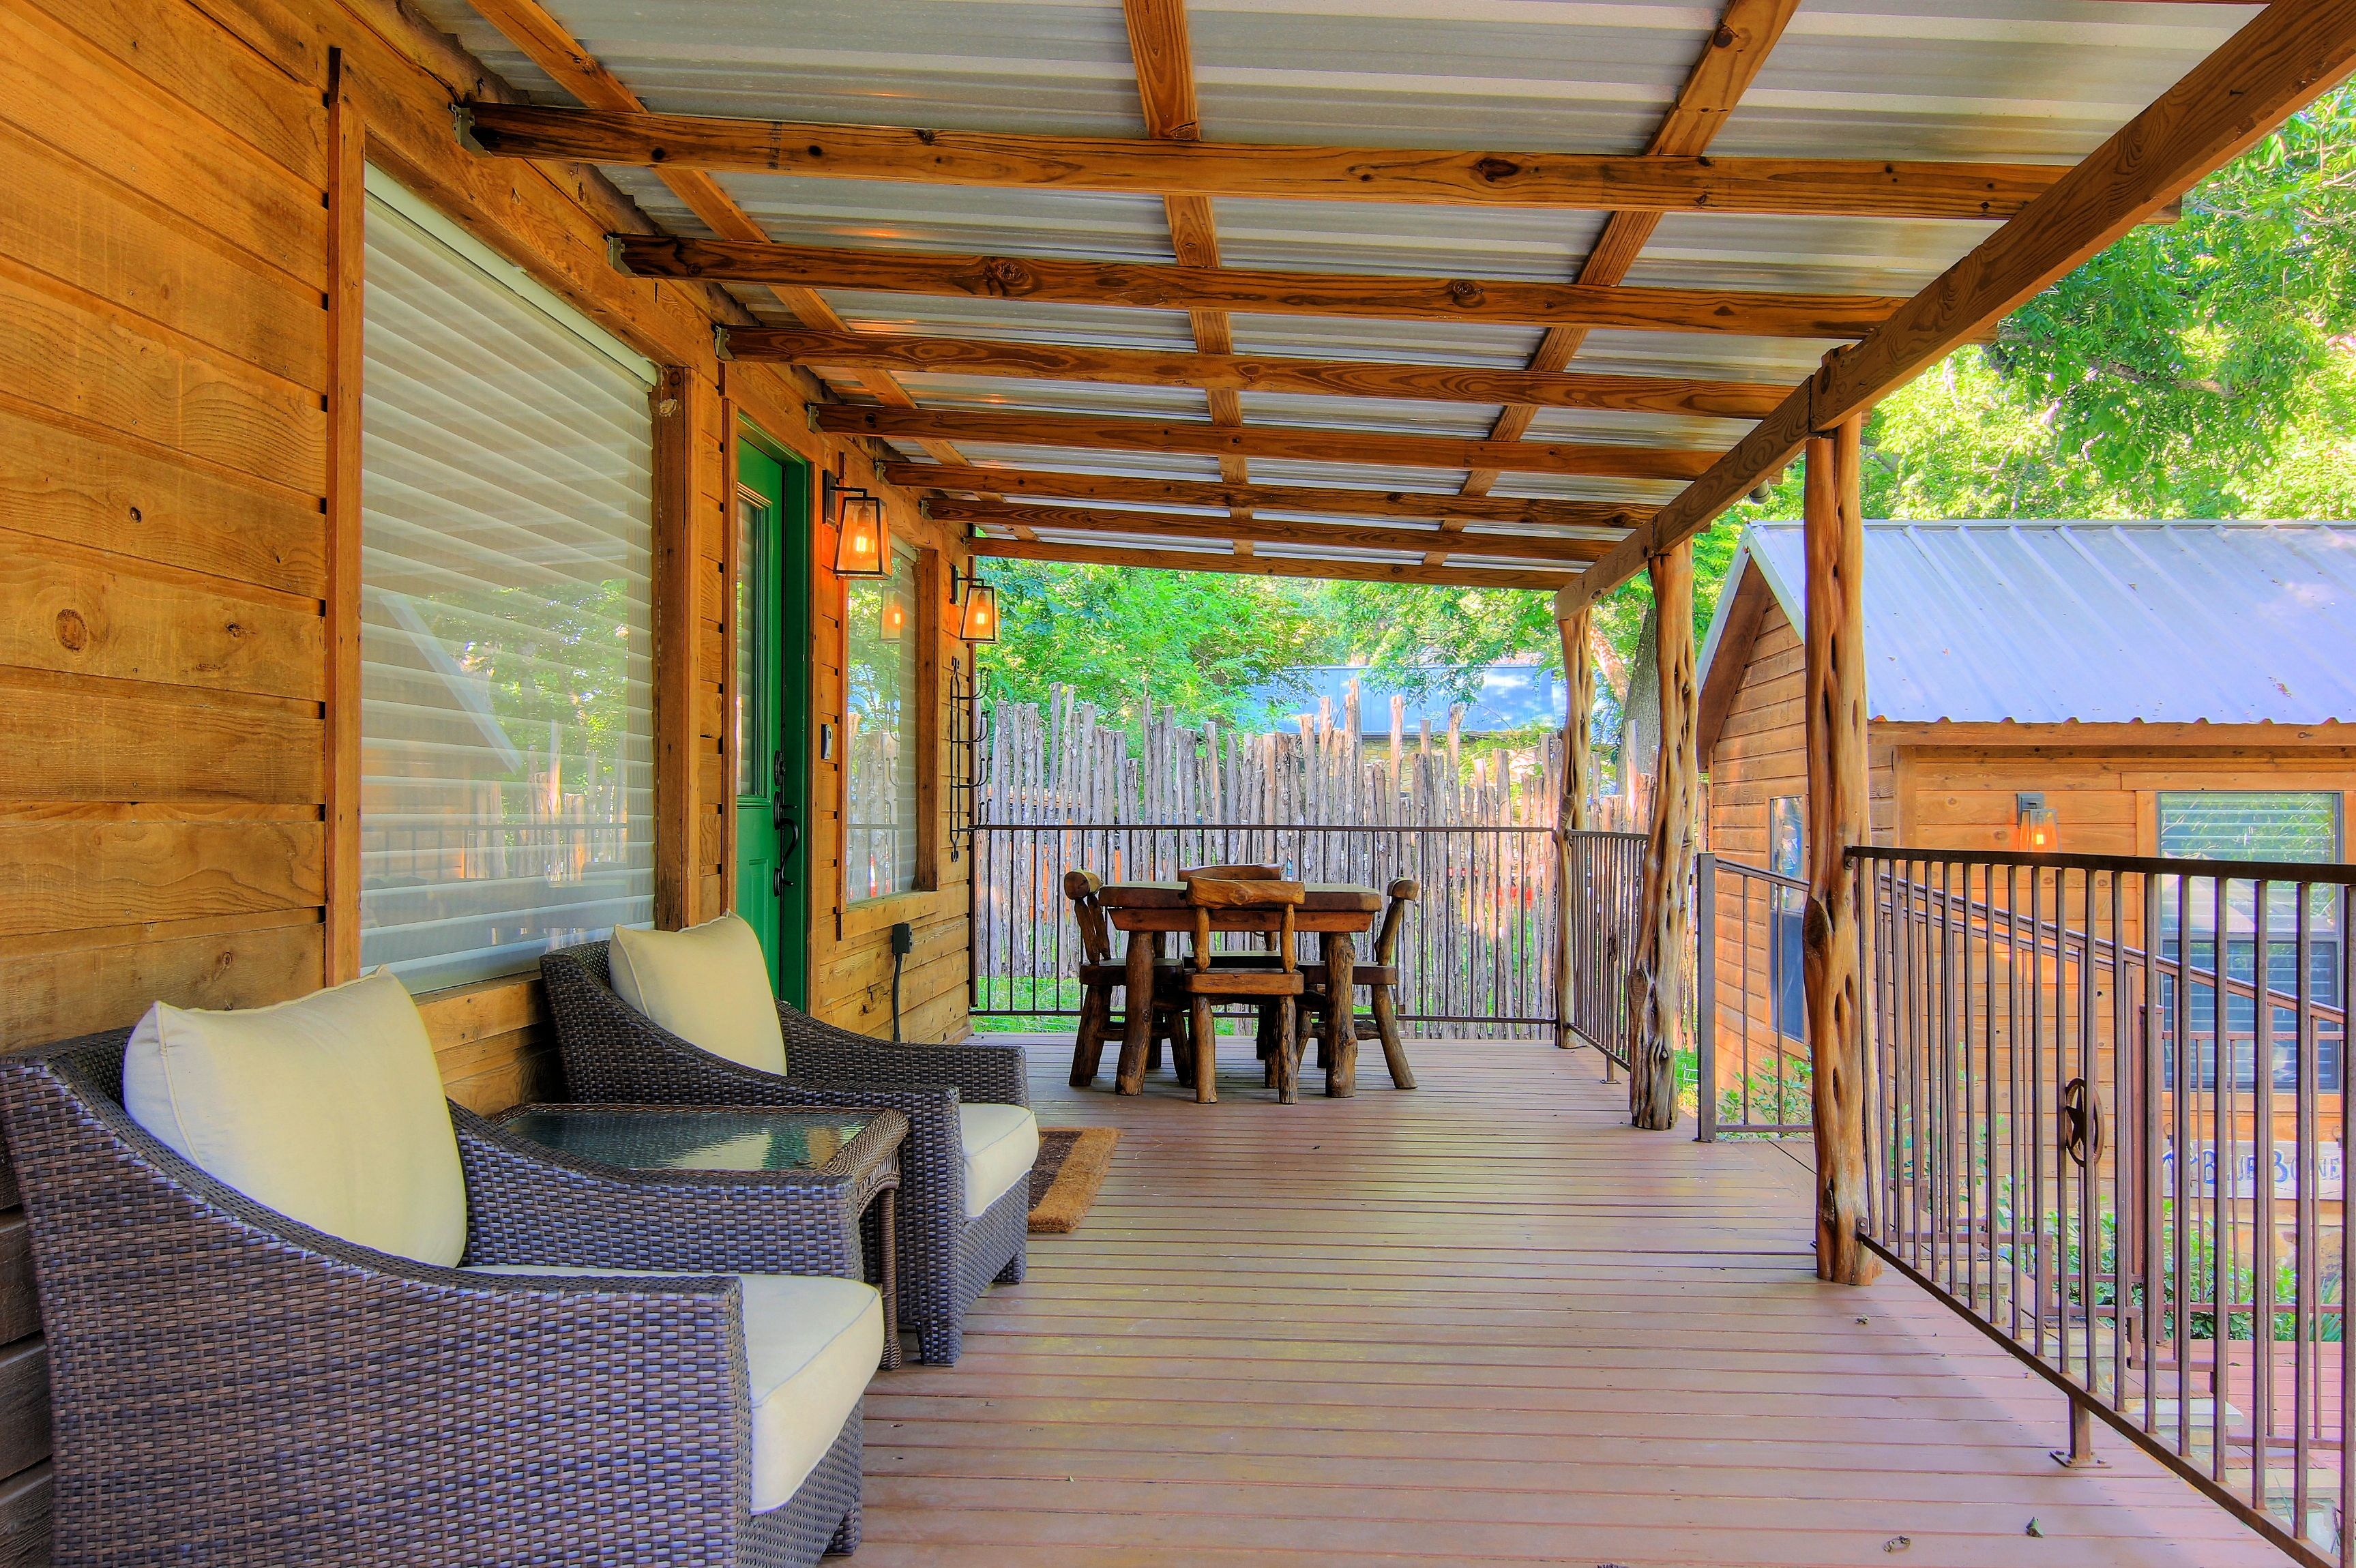 new from braunfels rentals mulberry img cabin cabins the schlitterbahn haus tour view porch resort